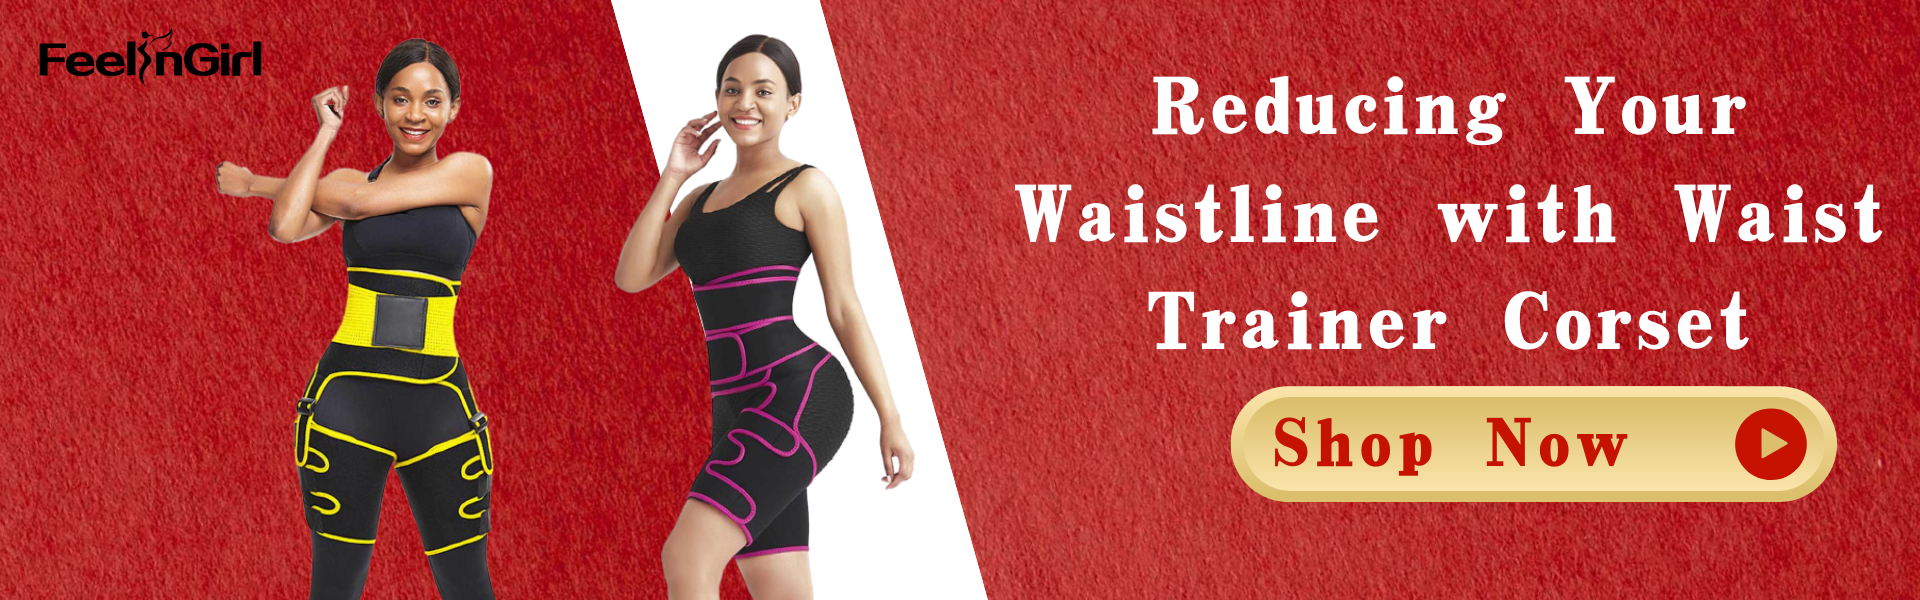 Reducing Your Waistline with Waist Trainer Corset